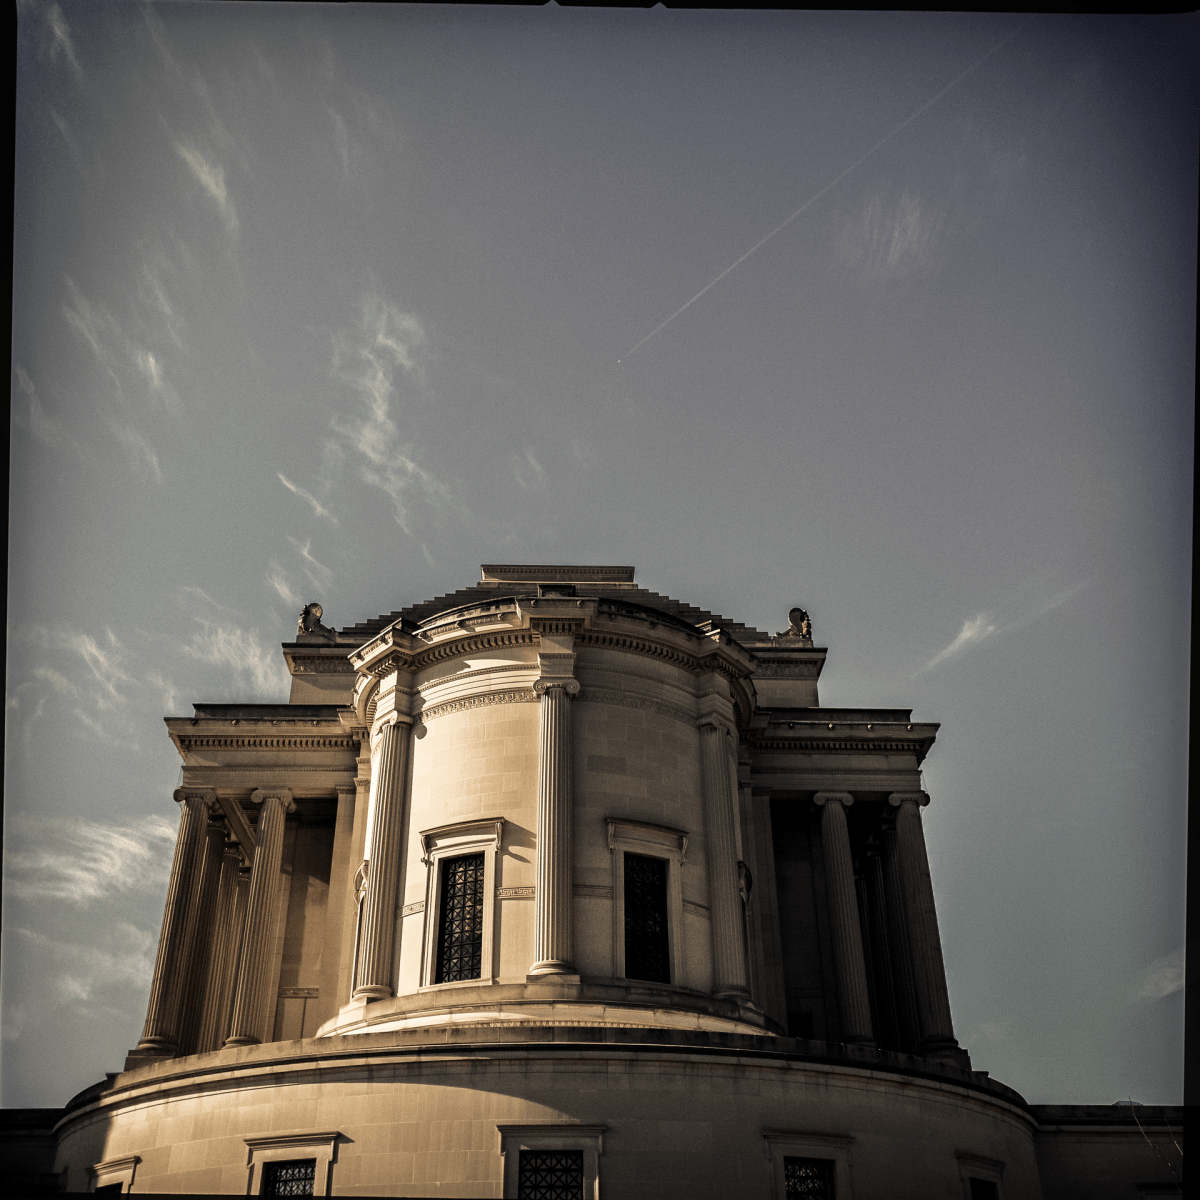 The Masonic temple at 1733 16th St. NW.